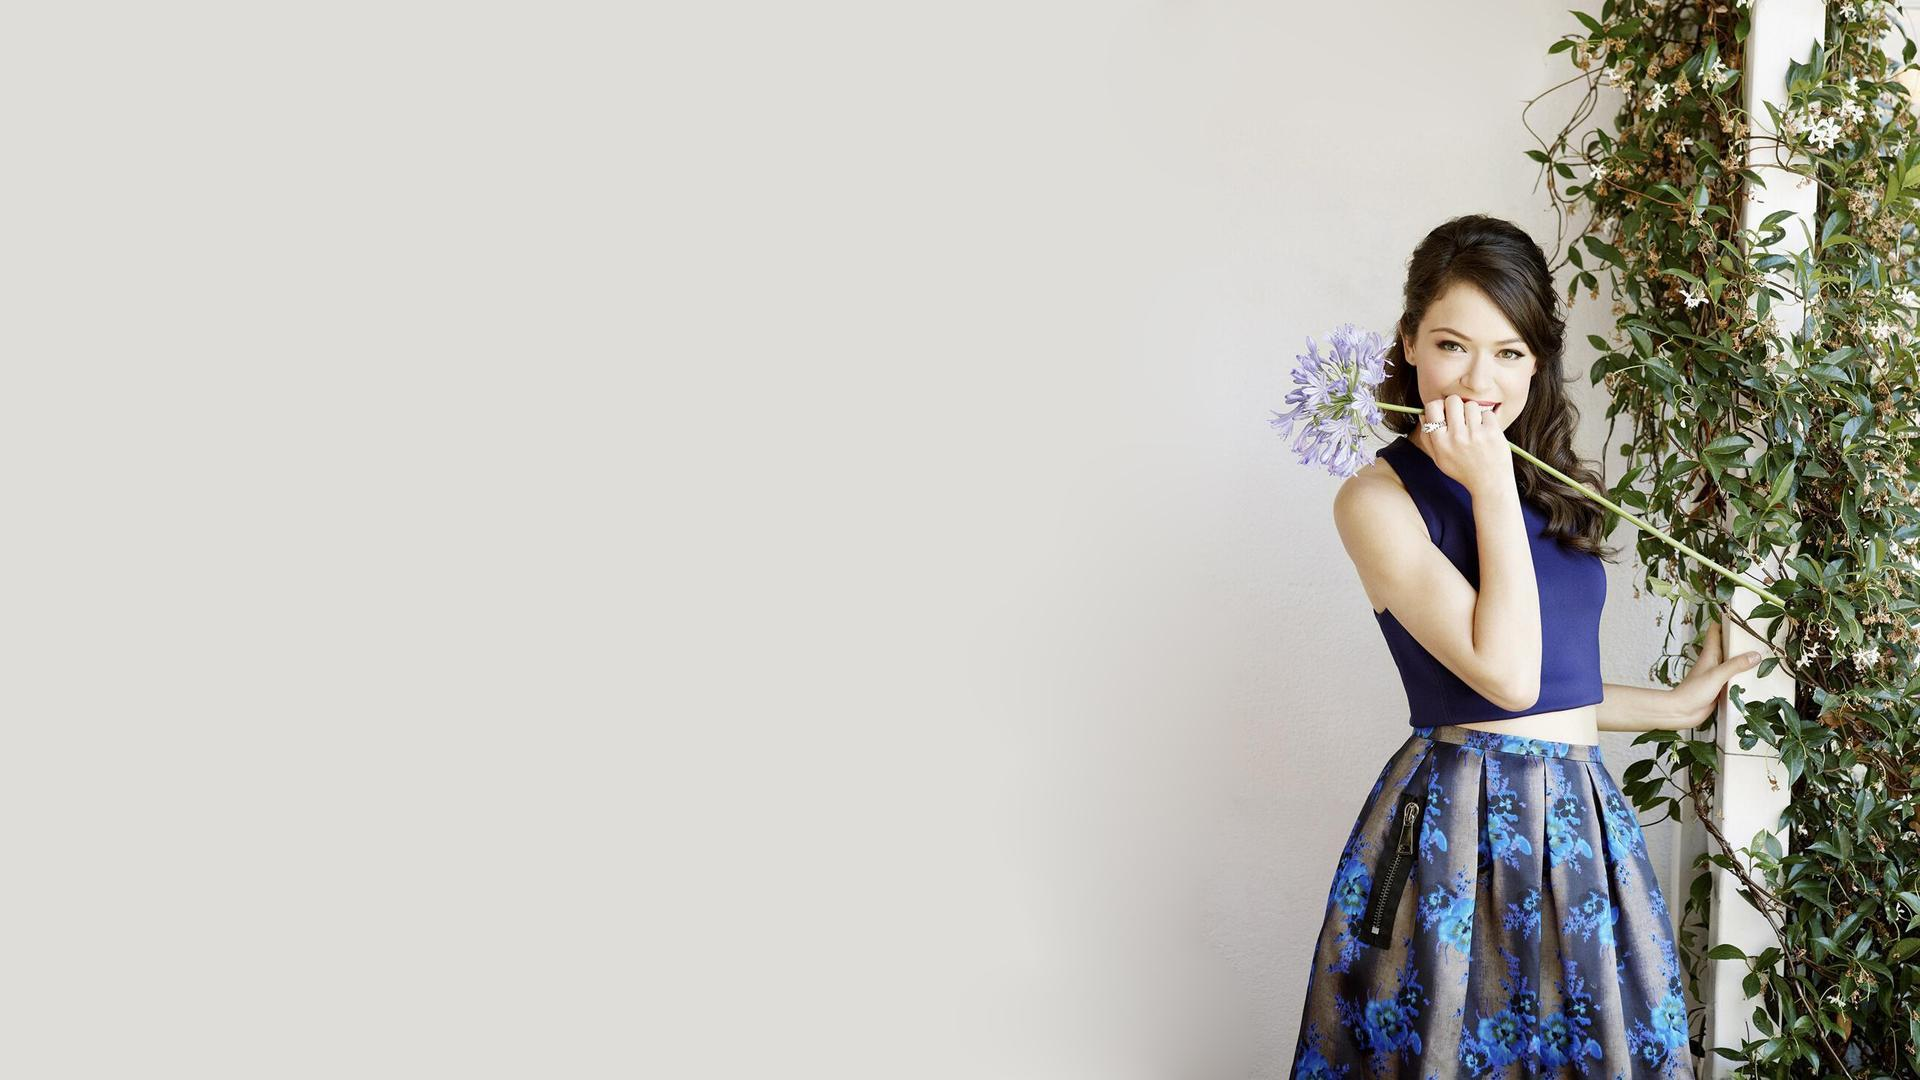 tatiana-maslany-wallpapers-27405-3468569.jpg